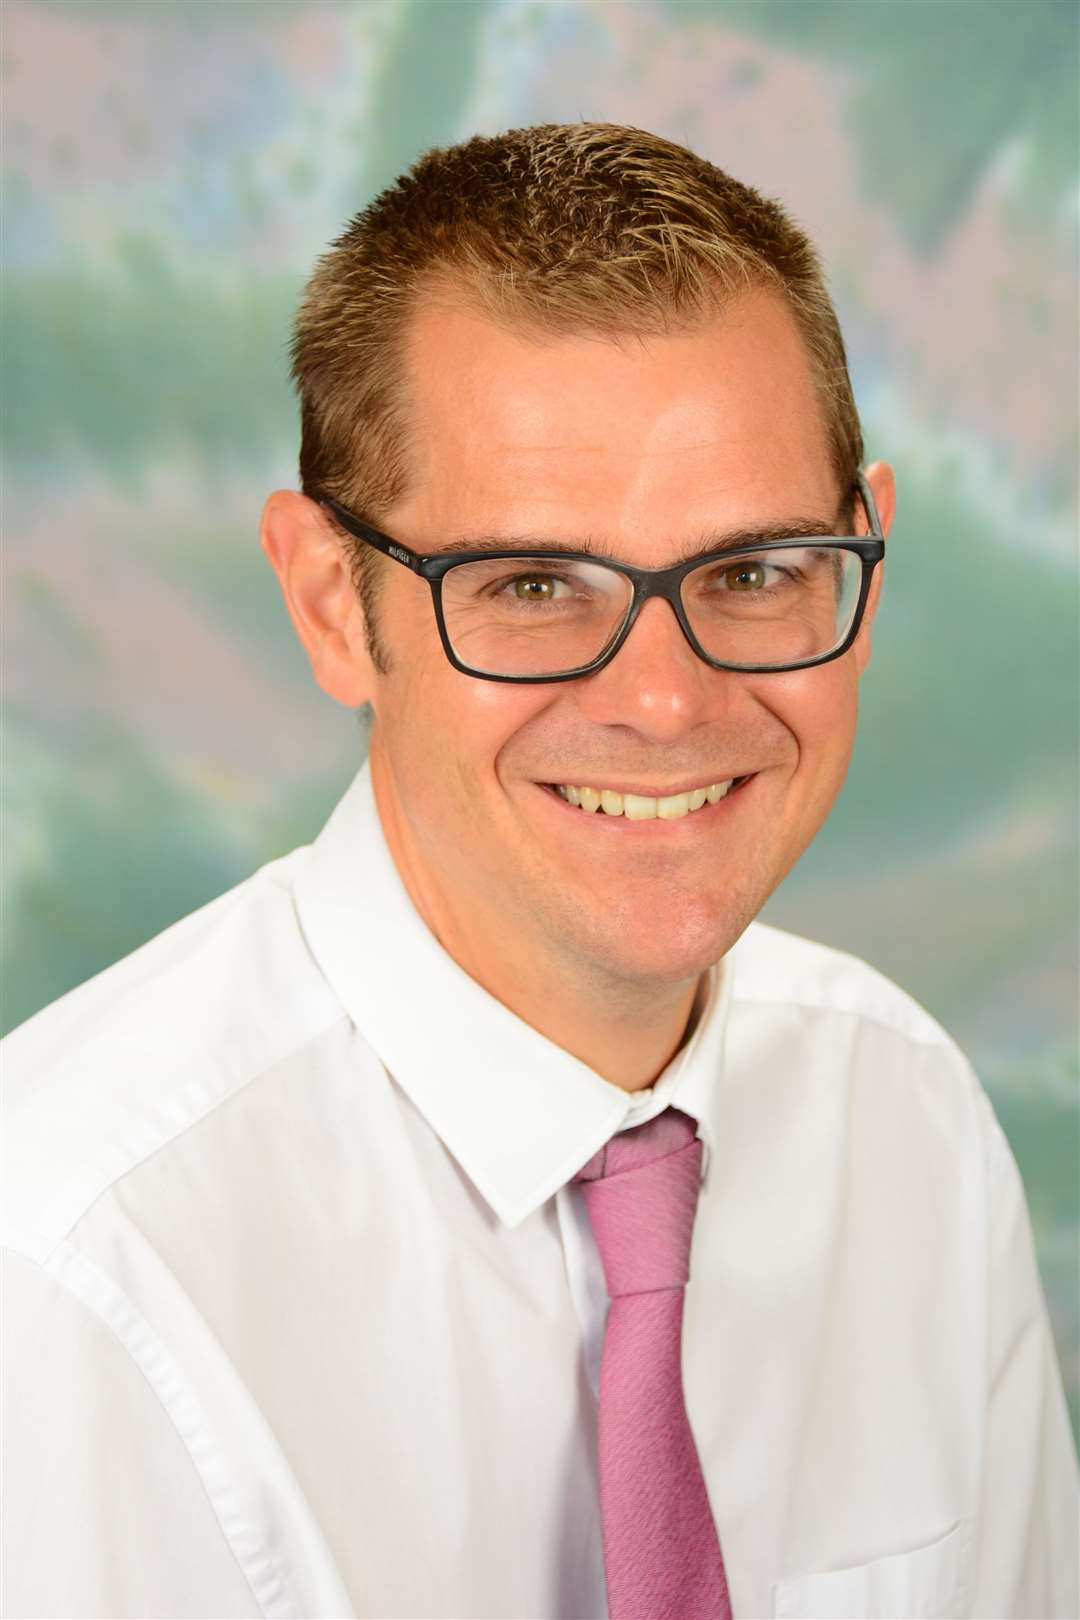 Ben Jeffery is the new headteacher at Westley Middle School in Bury St Edmunds. Picture submitted